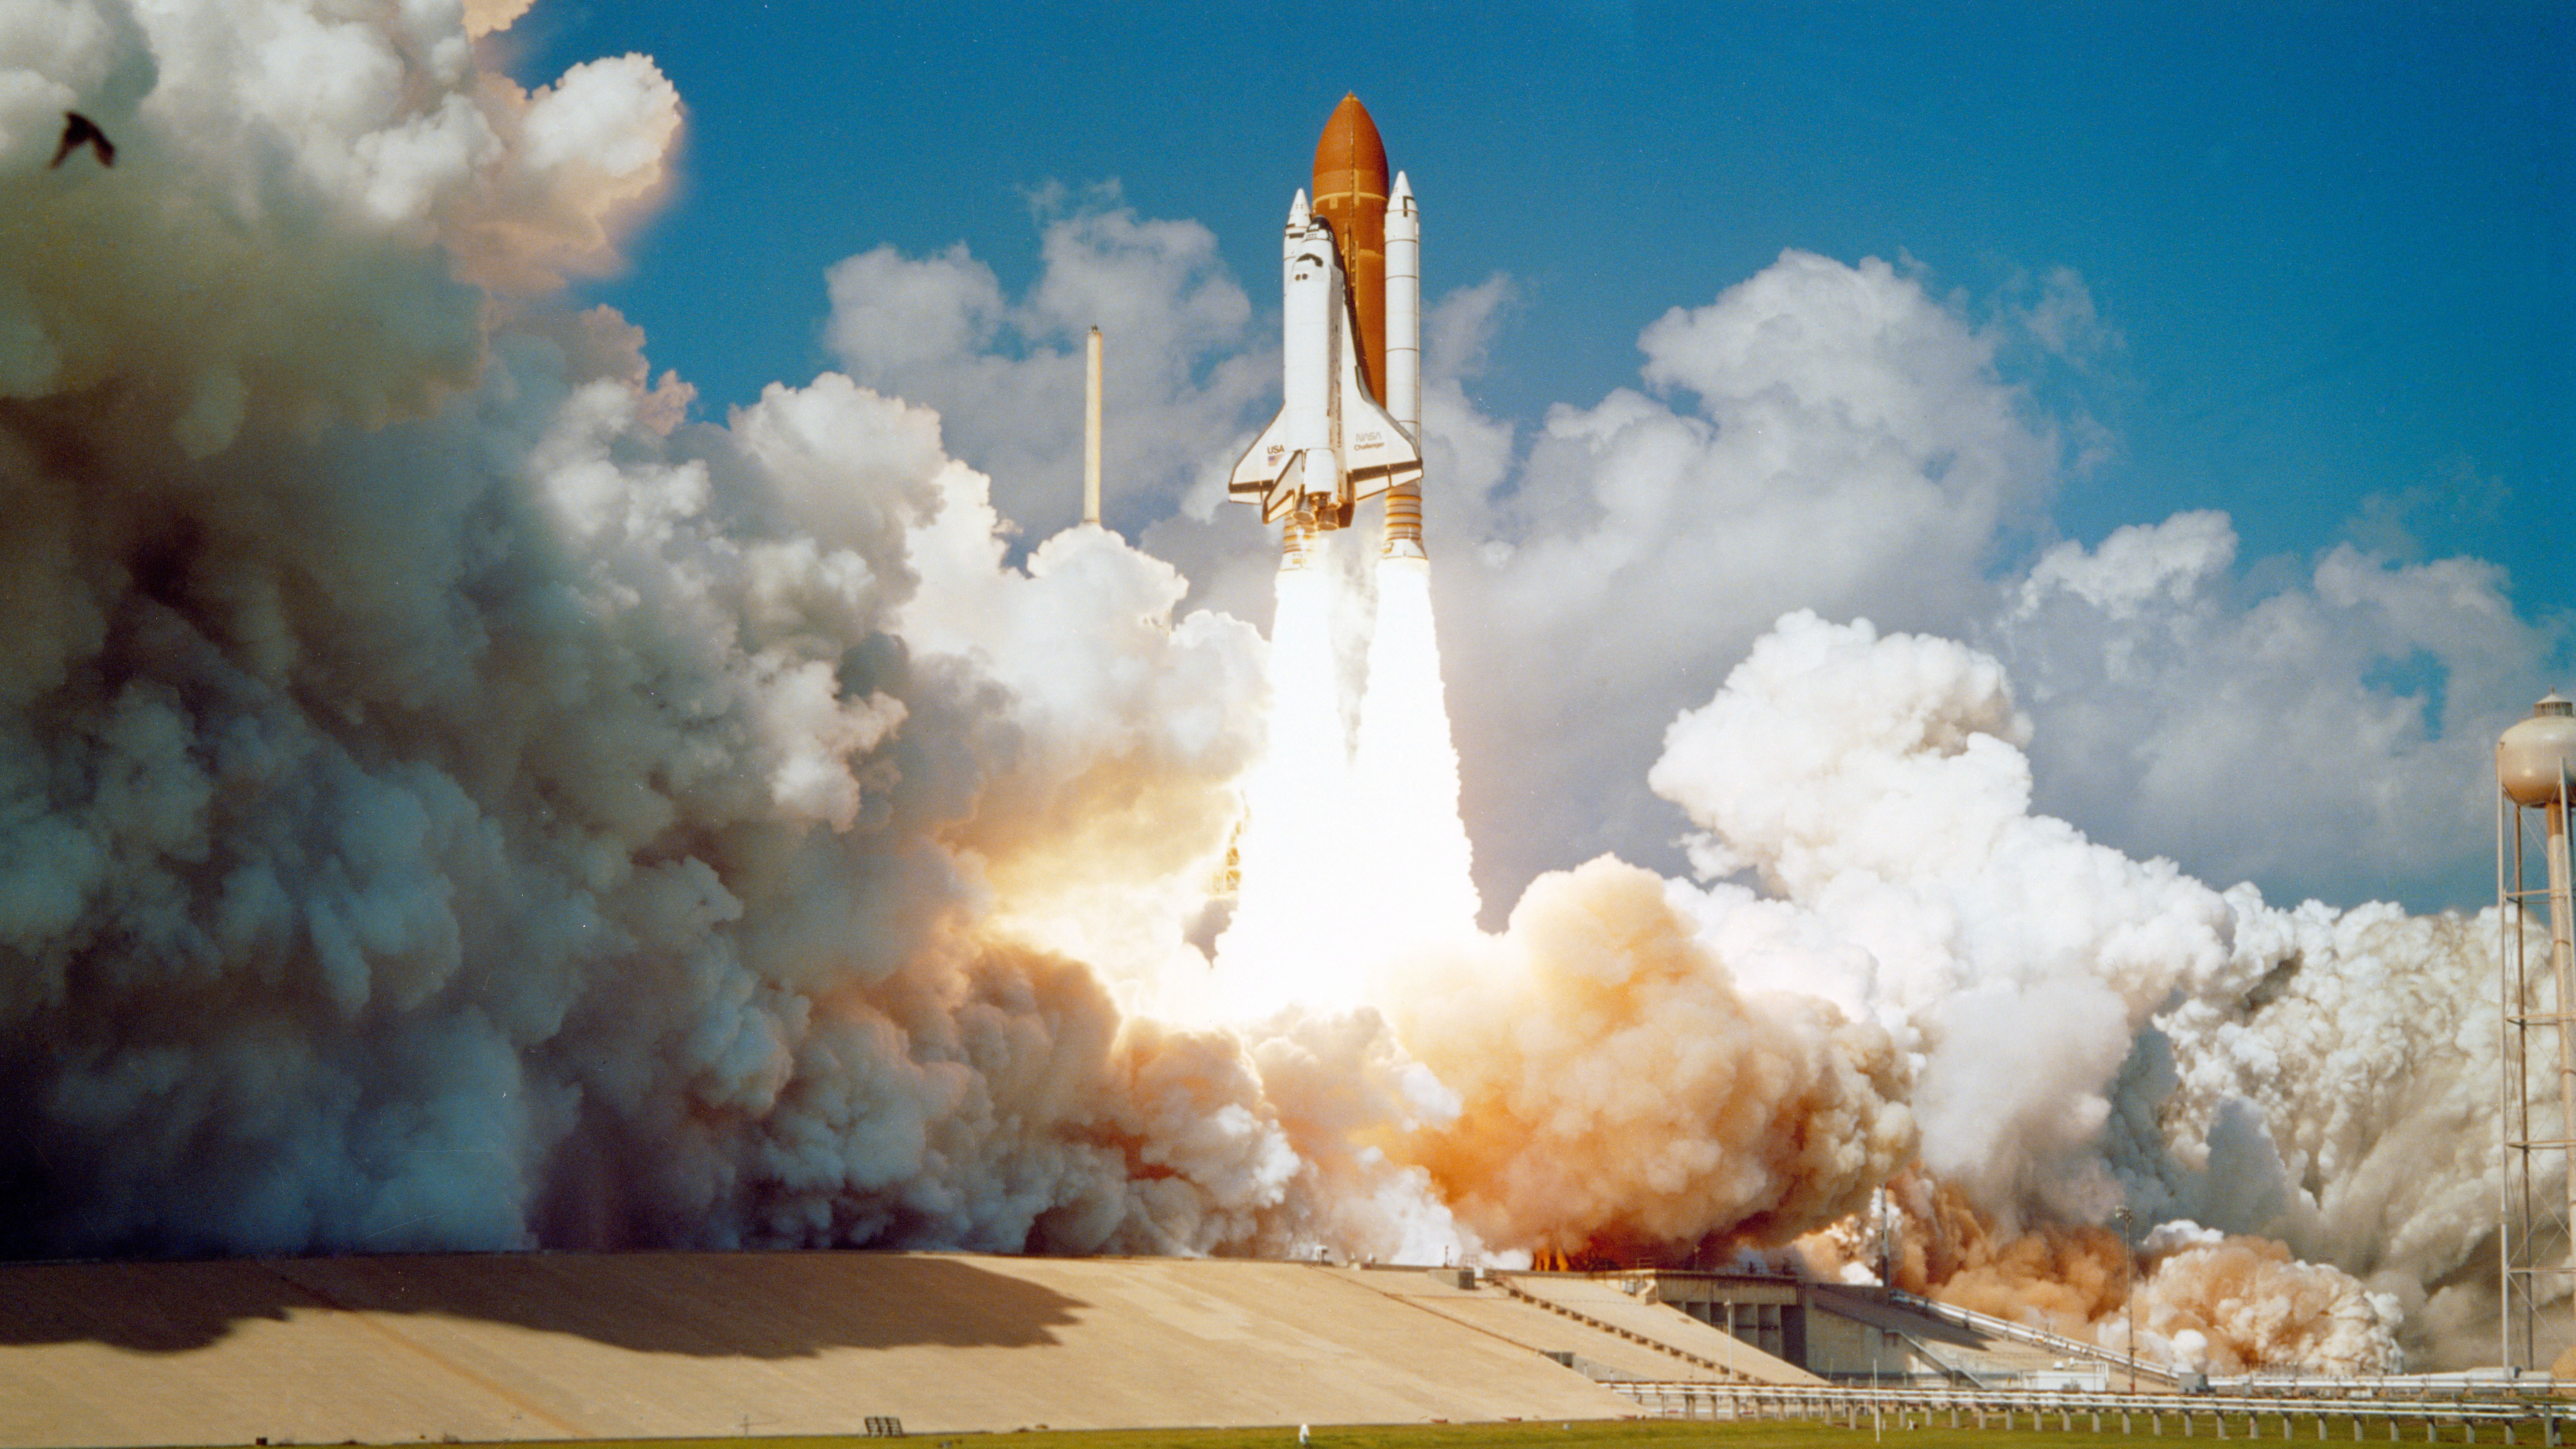 Space shuttle blasts of from Earth. Large plumes of smoke surround launch pad as rocket rises.